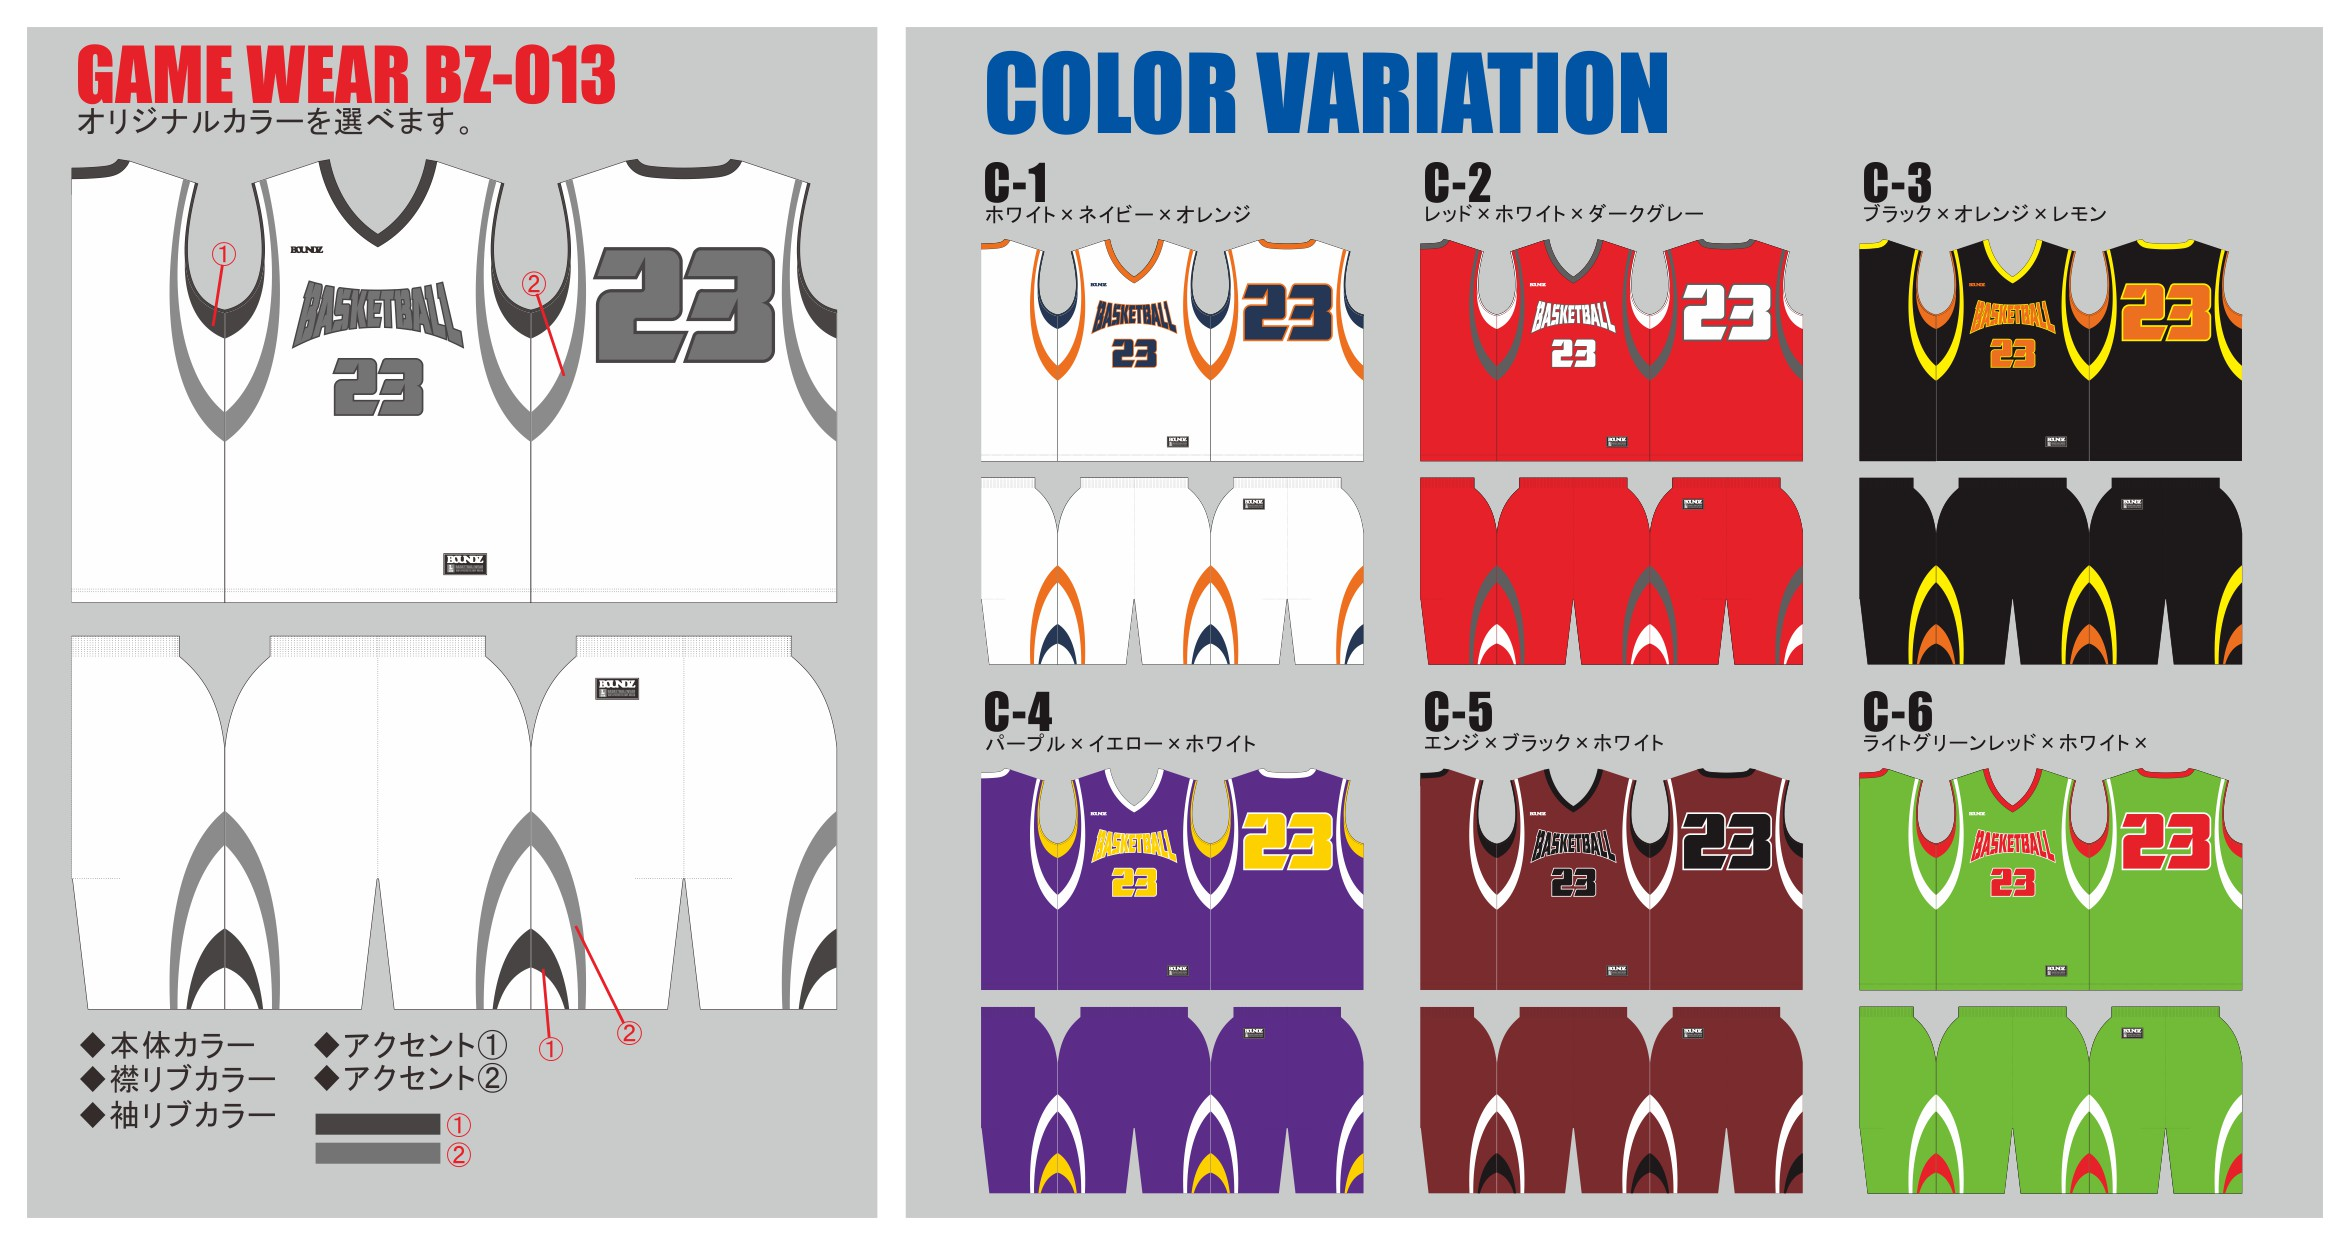 GAME_WEAR_BZ013_color